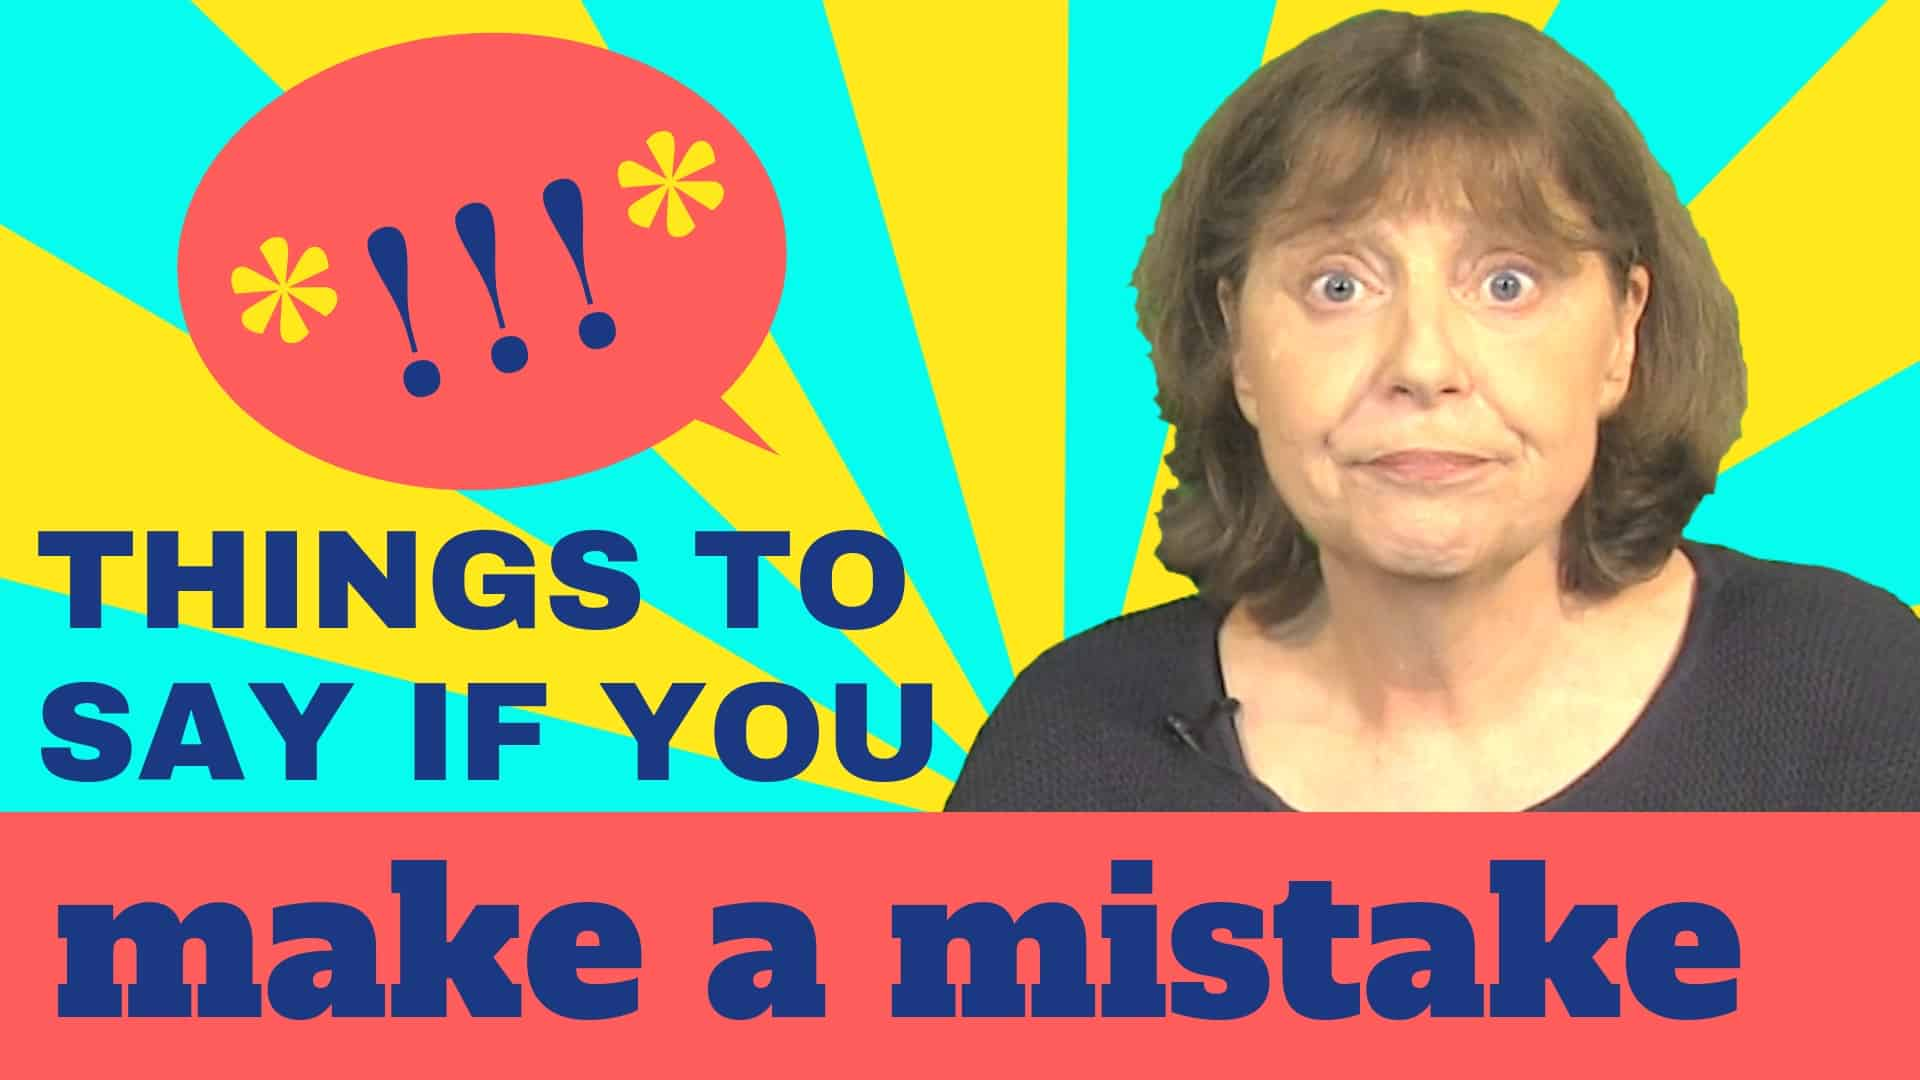 Mess up verb meaning to learn